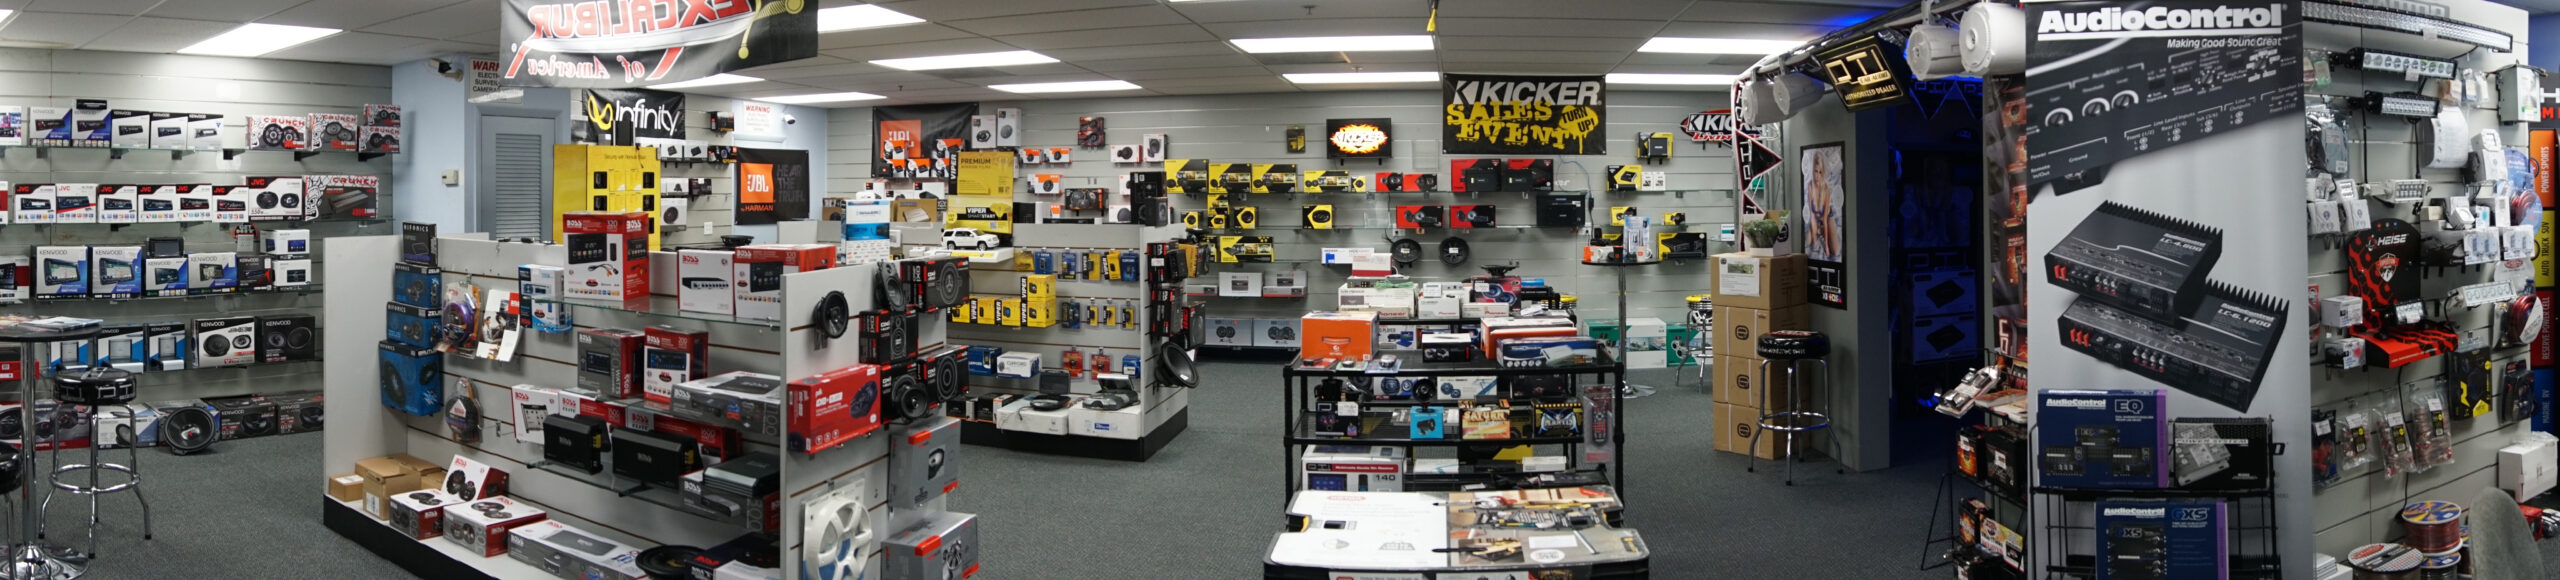 diplomat trading showroom in Miami Florida showing pro and mobile audio products